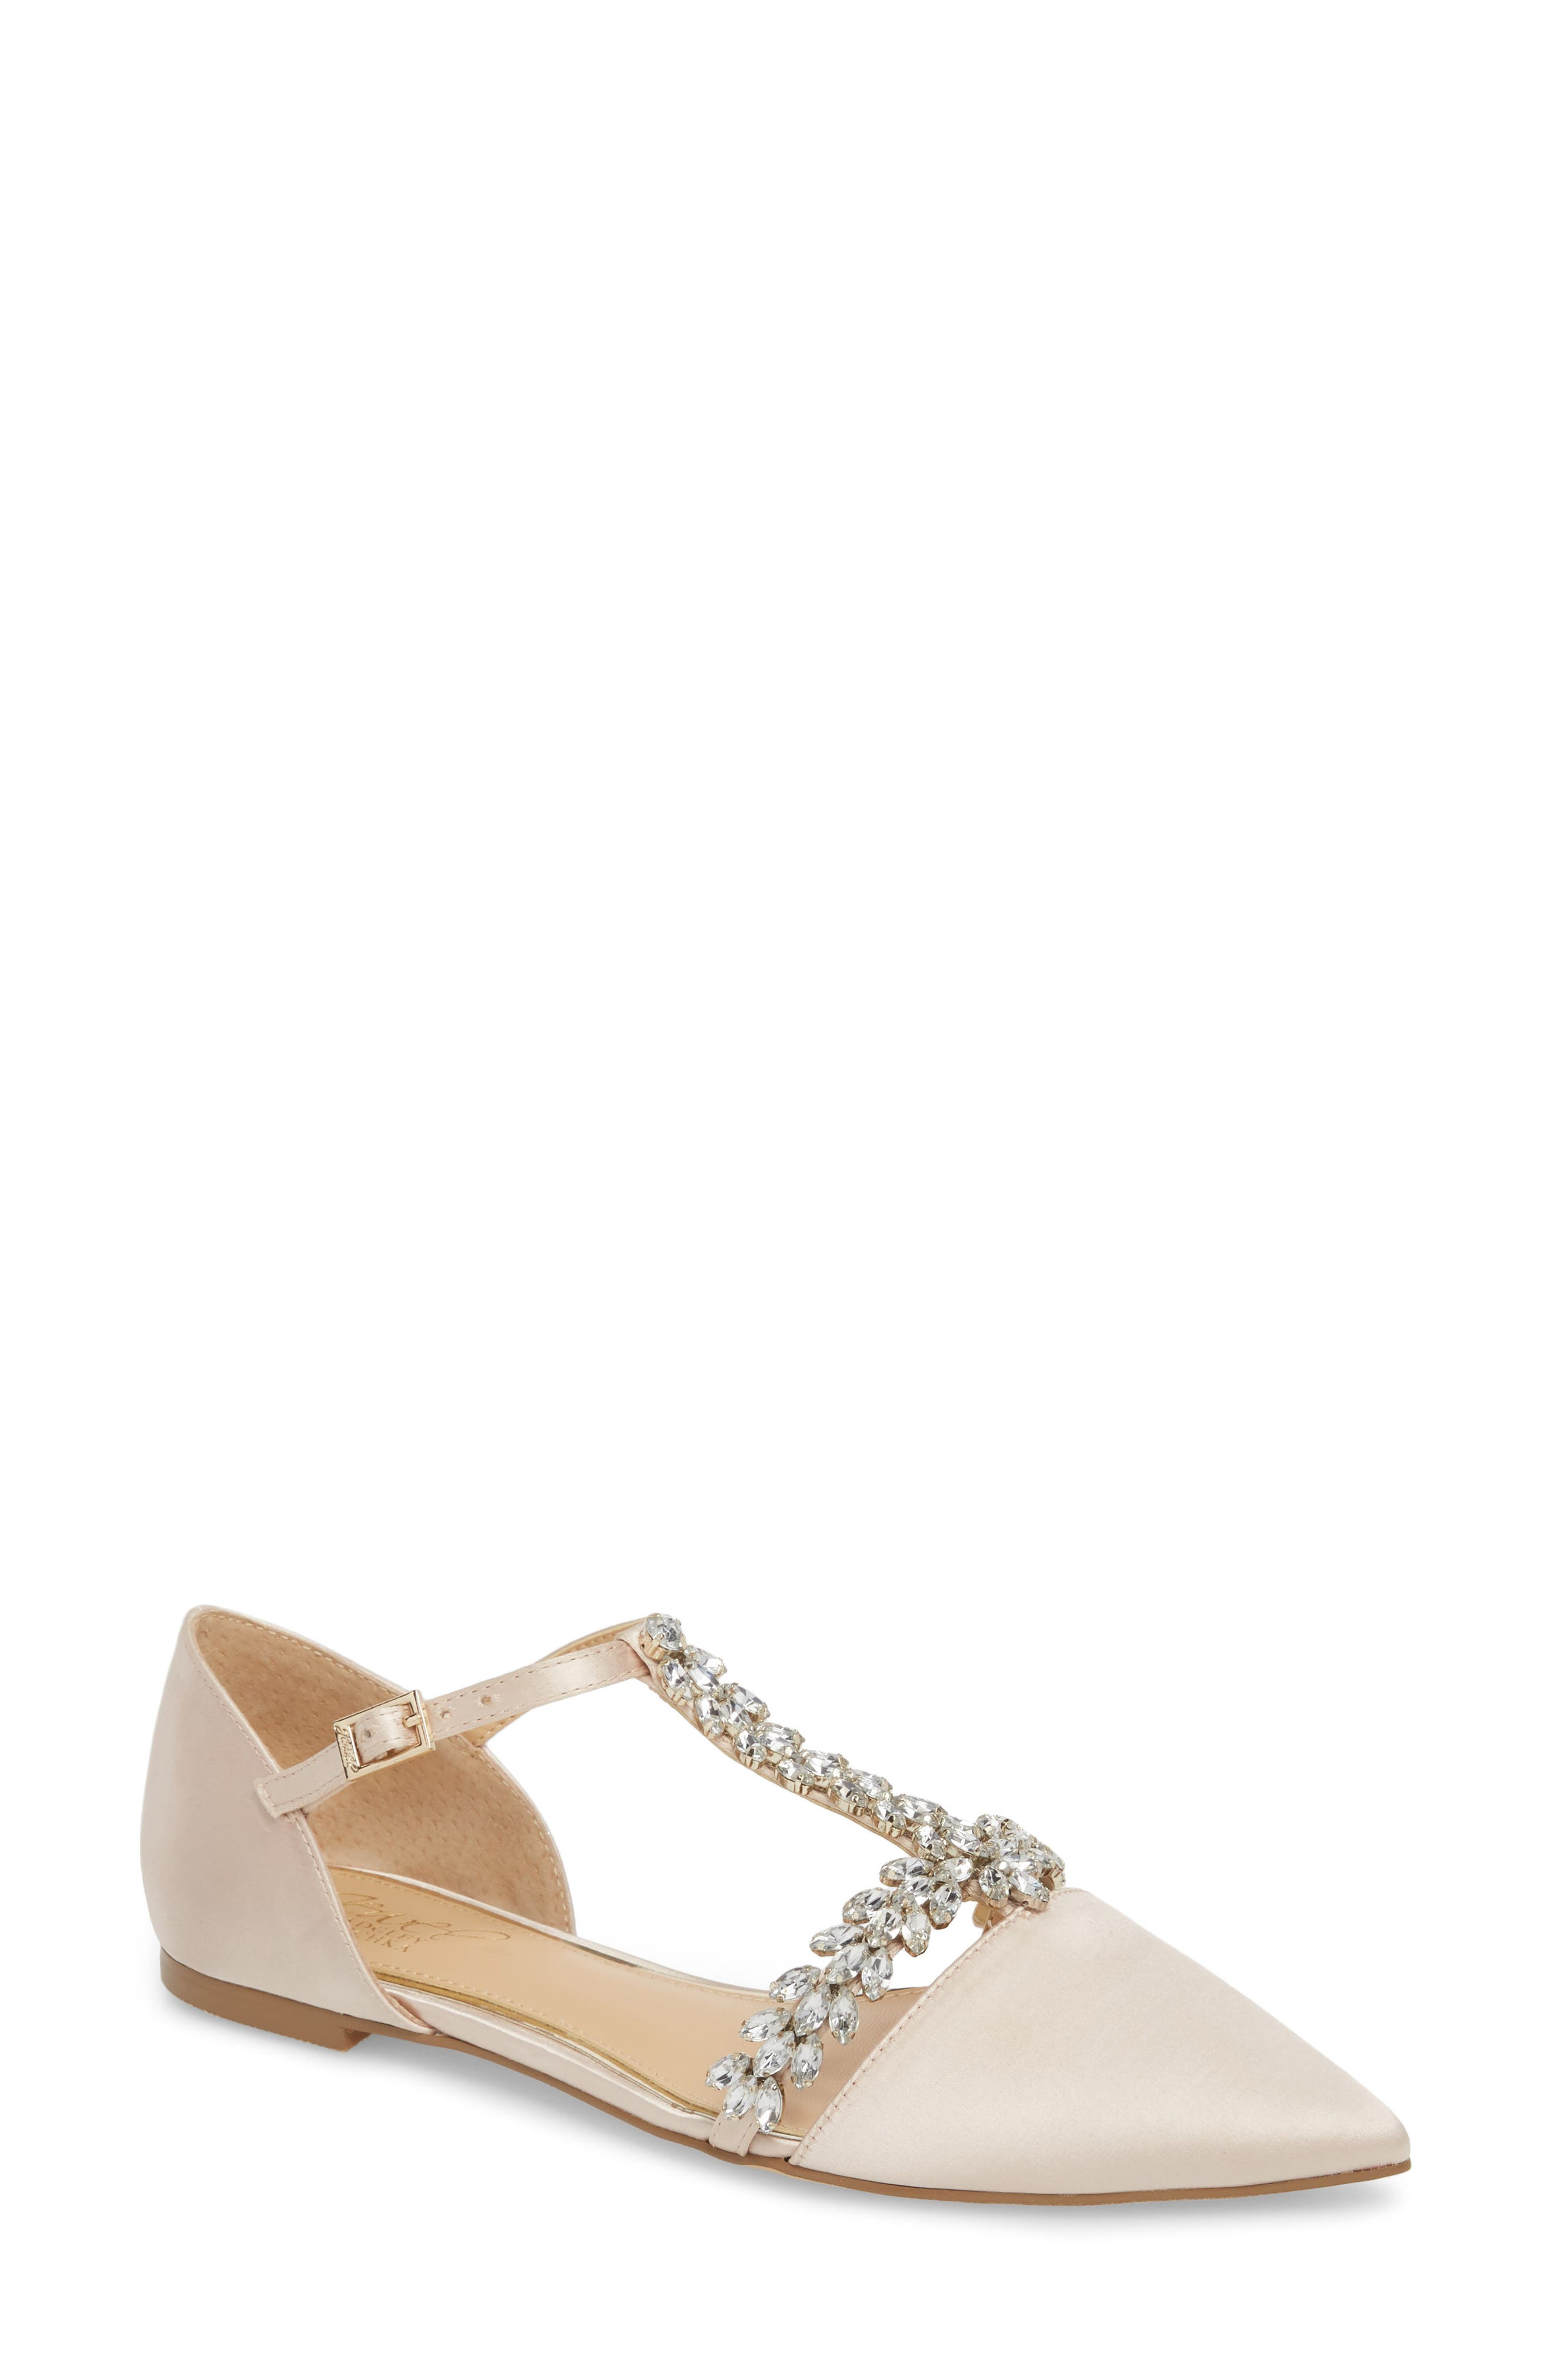 a869cb118b228 Women s Jewel Badgley Mischka Party   Evening Flats